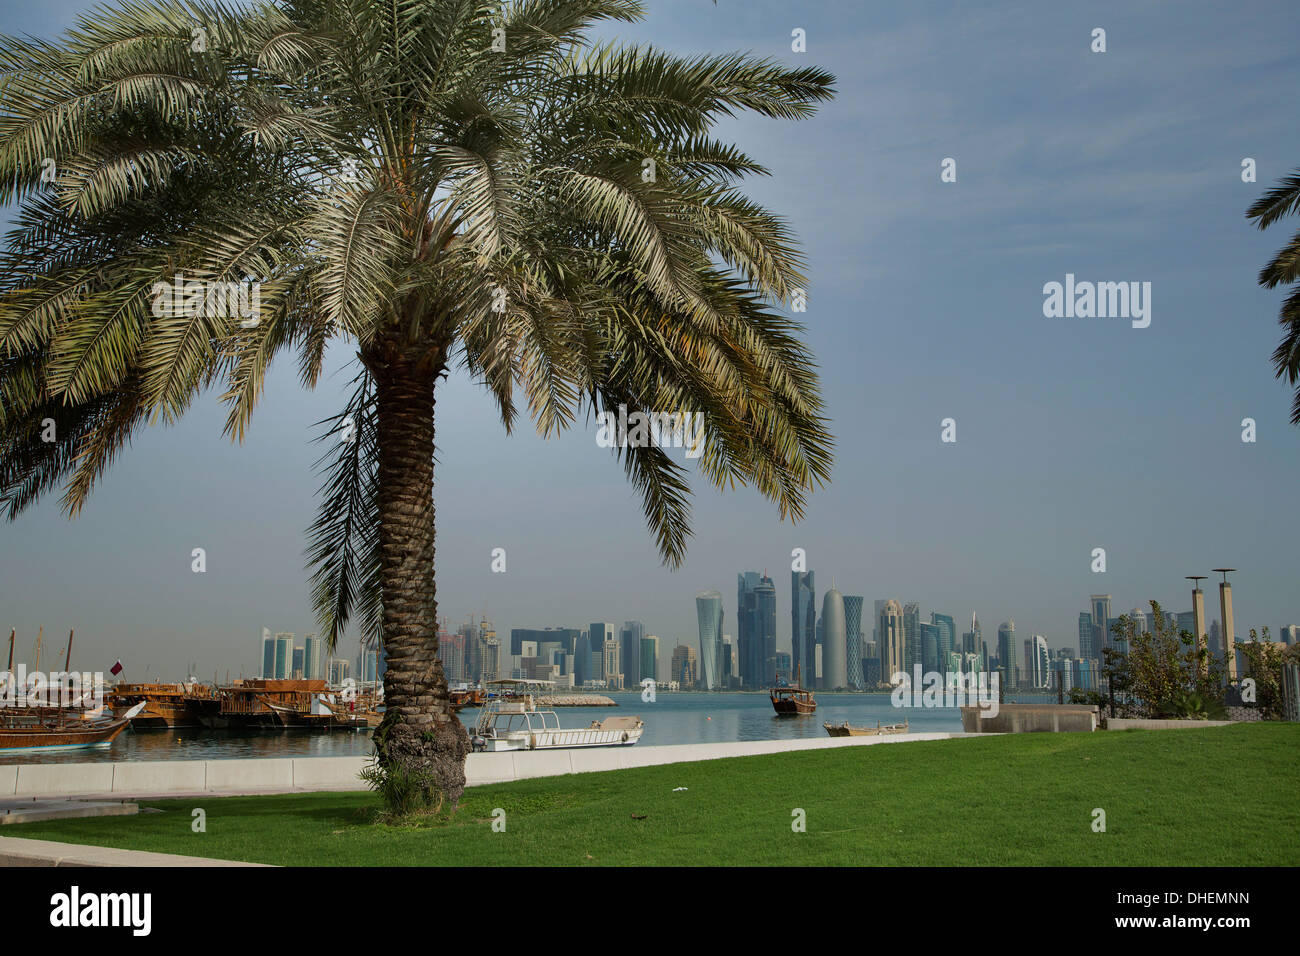 Futuristic skyscrapers on the distant Doha skyline, Qatar, Middle East - Stock Image